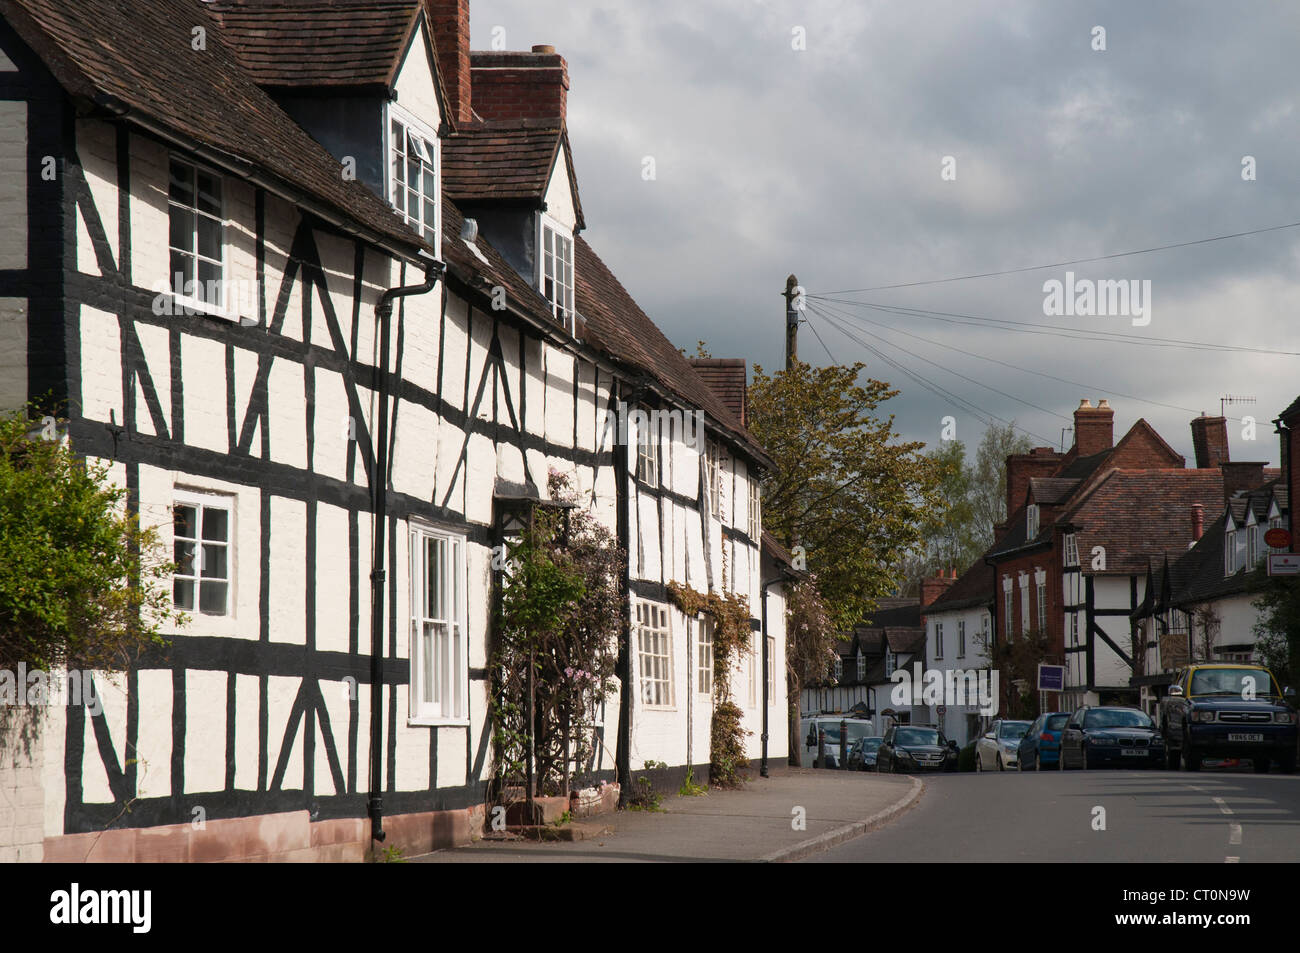 High street lined with half-timbered buildings in Chaddesley Corbett in the English Midlands - Stock Image